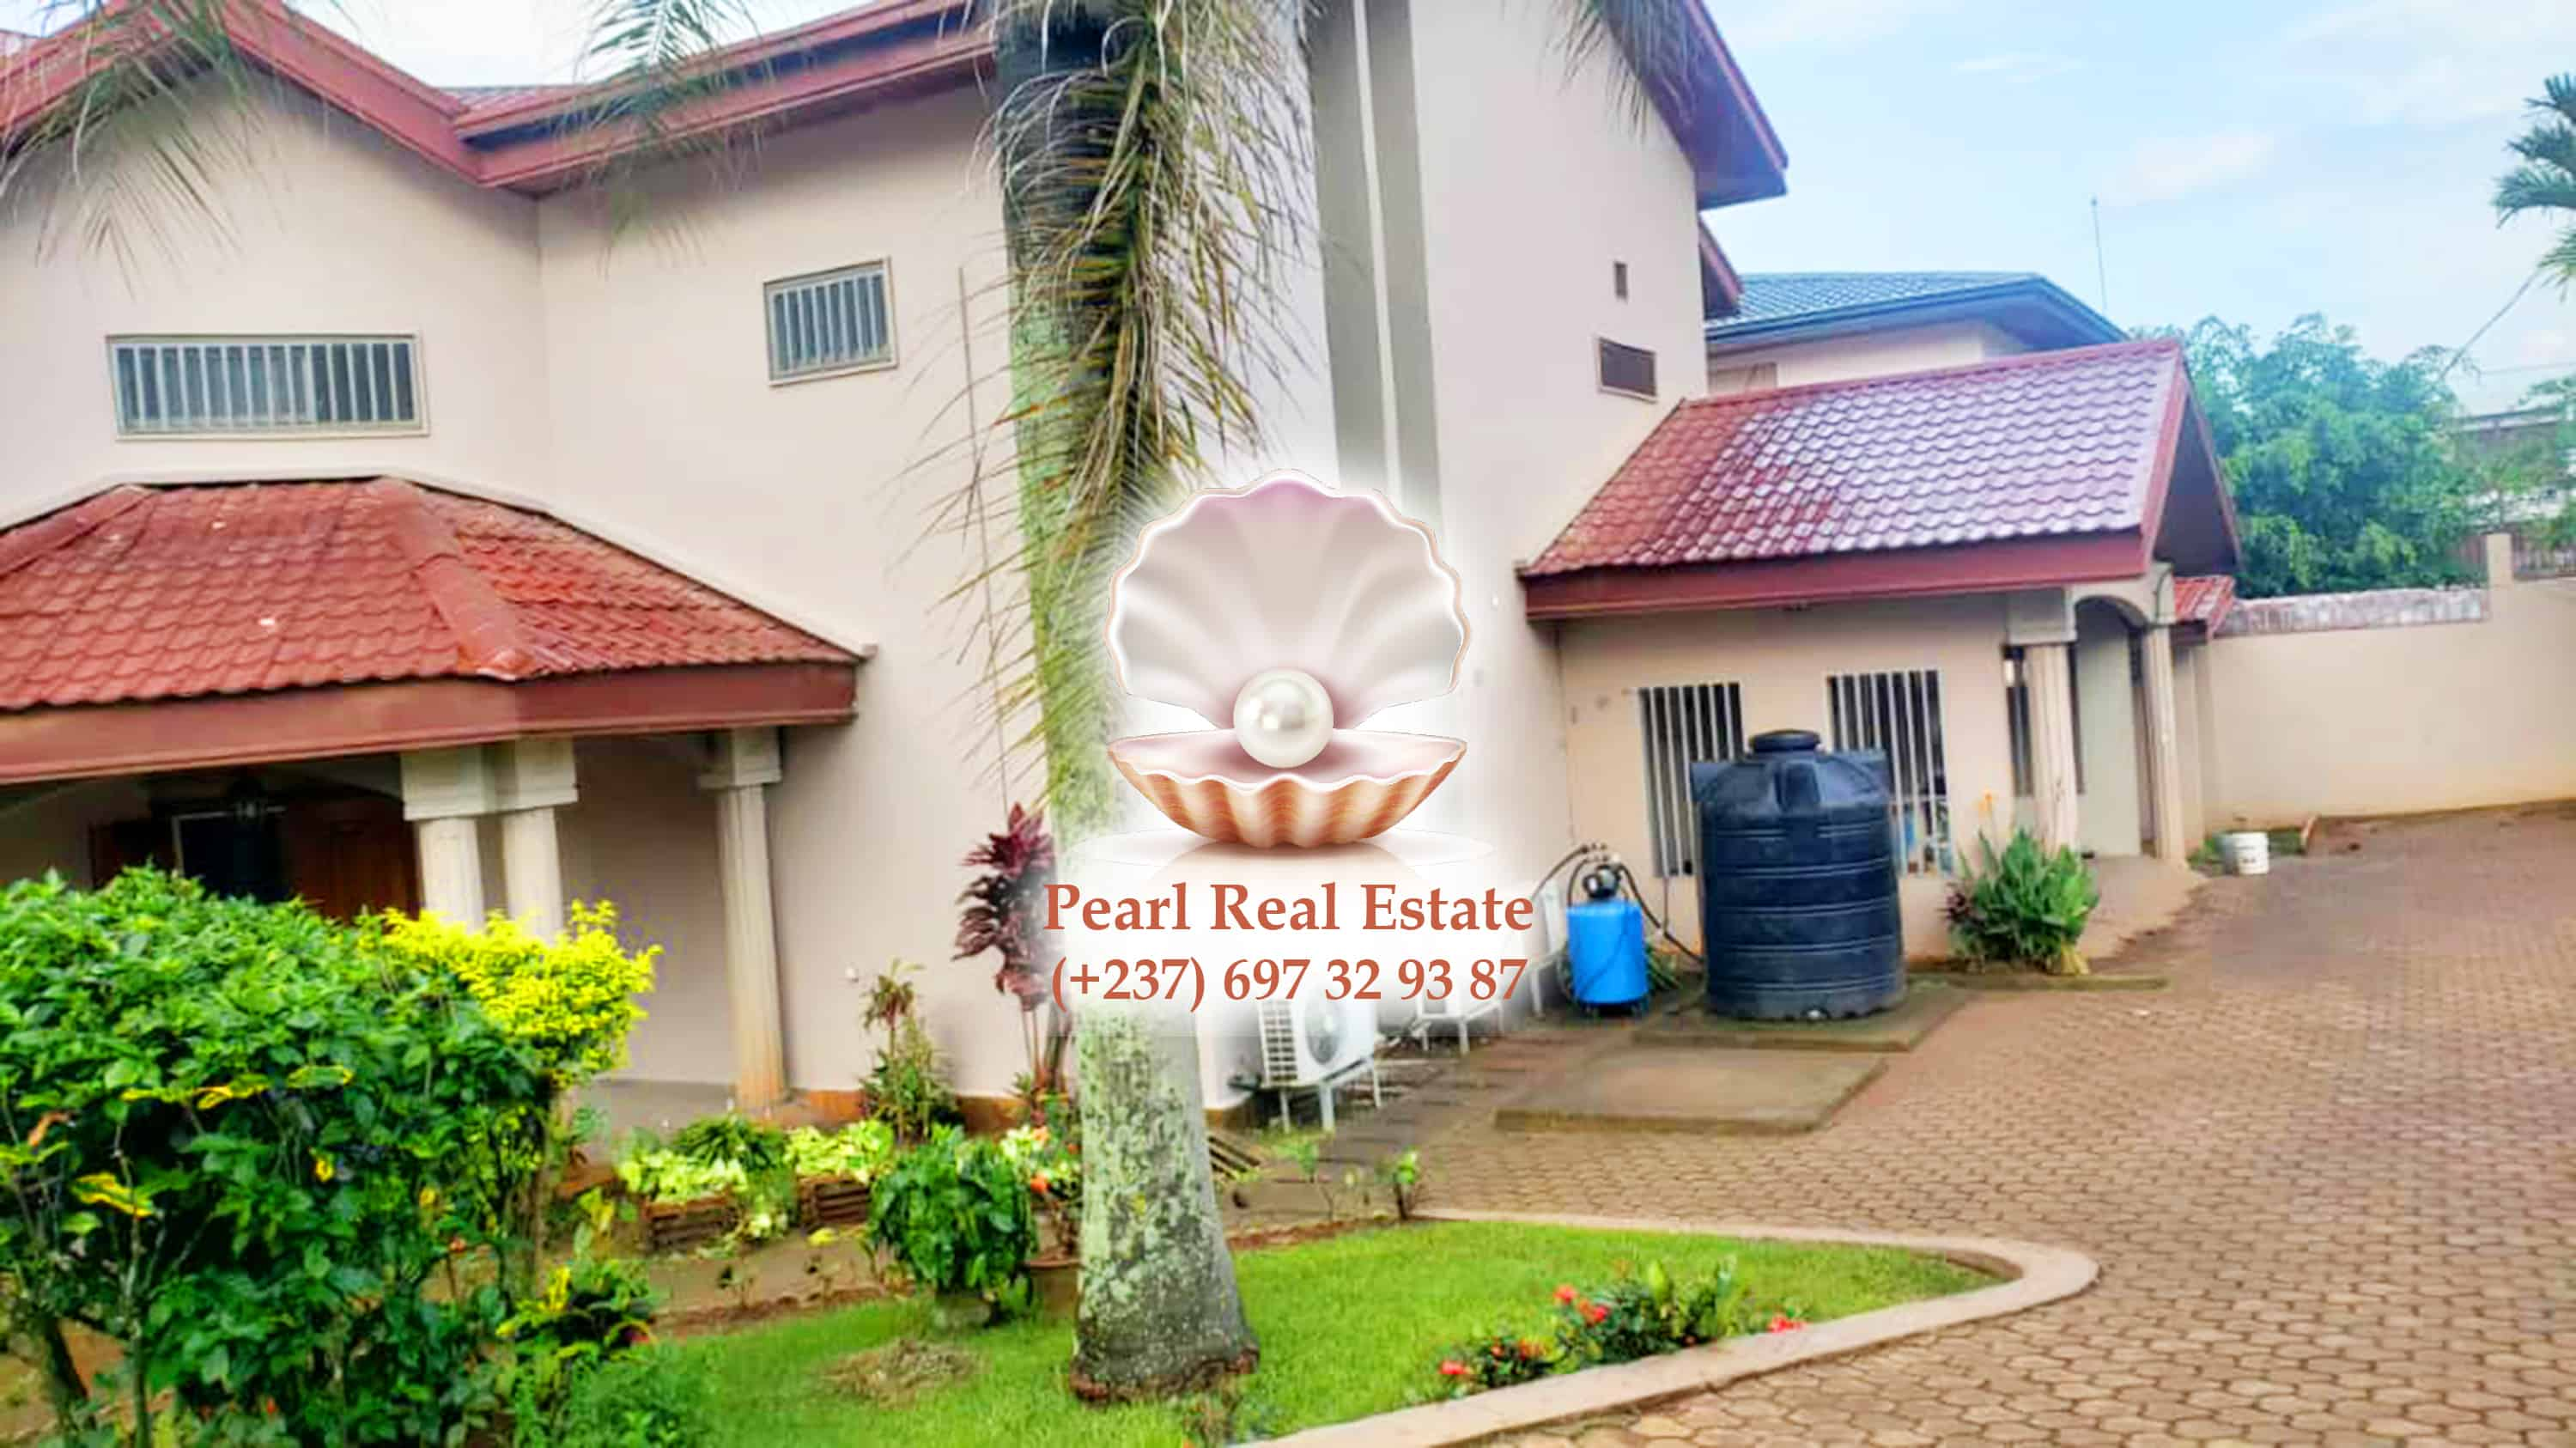 House (Duplex) to rent - Yaoundé, Bastos, Quartier du Golf - 2 living room(s), 5 bedroom(s), 4 bathroom(s) - 3 500 000 FCFA / month